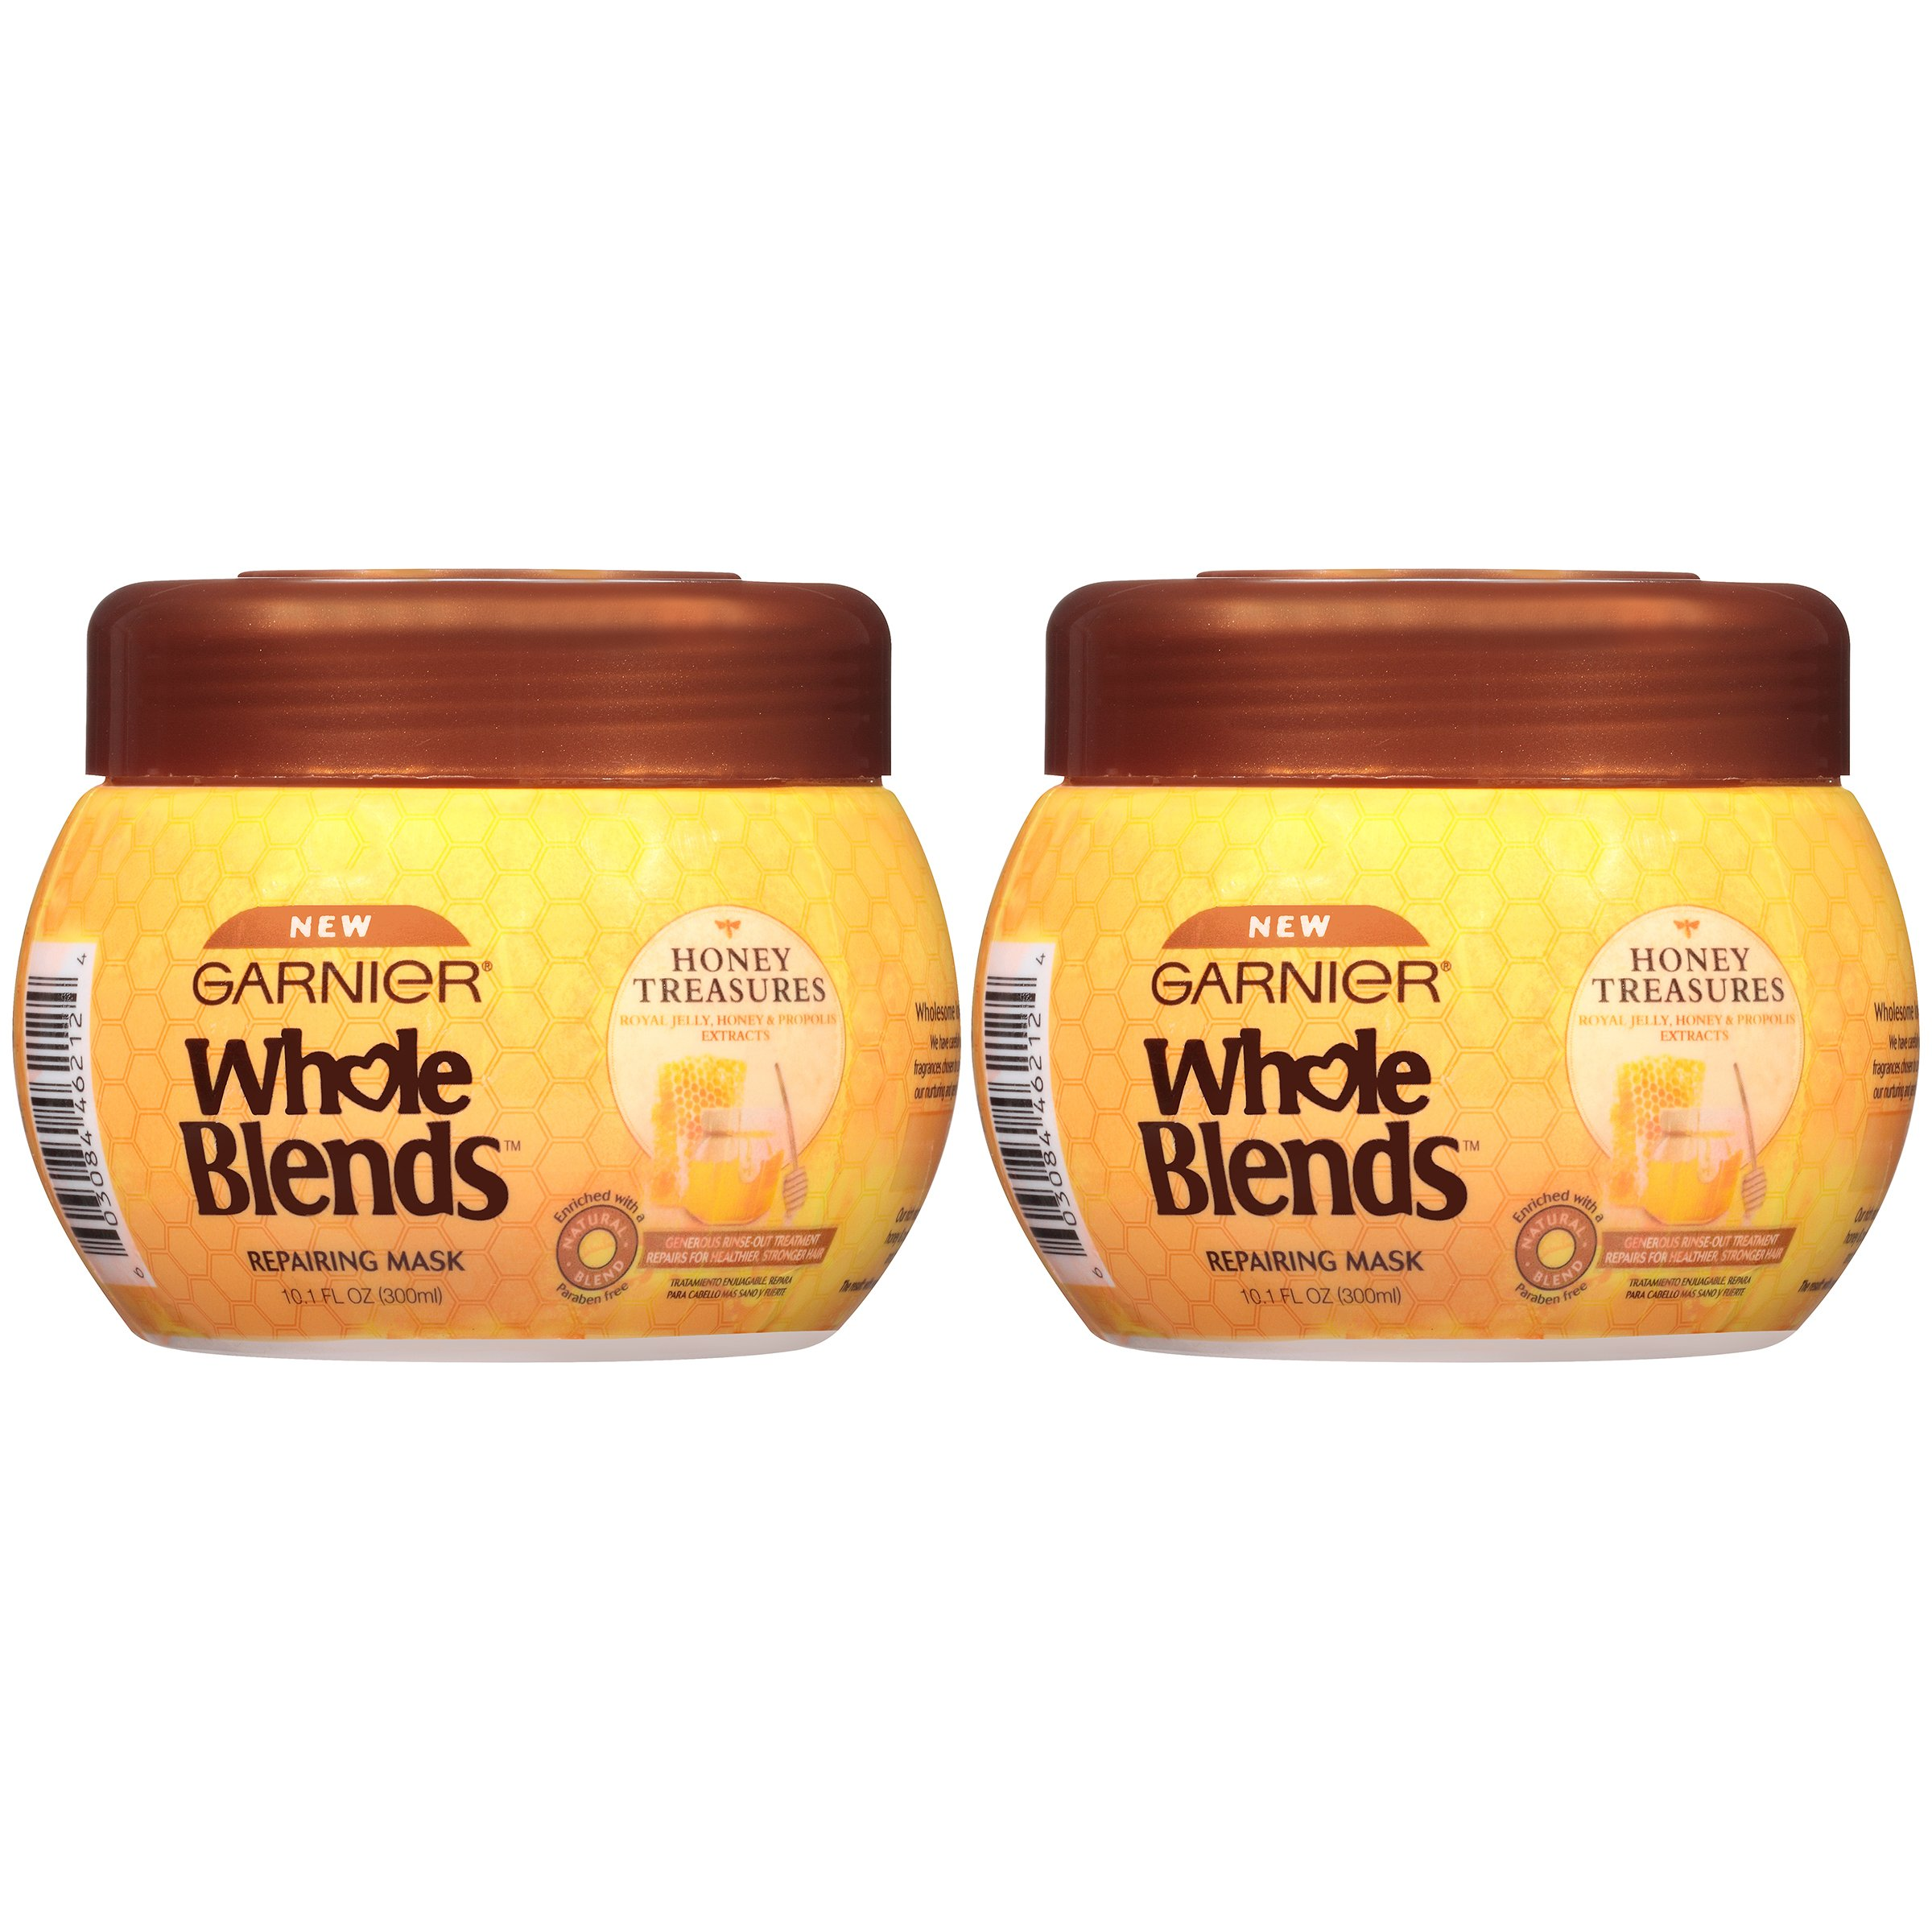 Garnier Whole Blends Honey Treasures Repairing Hair Mask for Dry Damaged Hair, 10.1 Ounce Jar, 2 Count